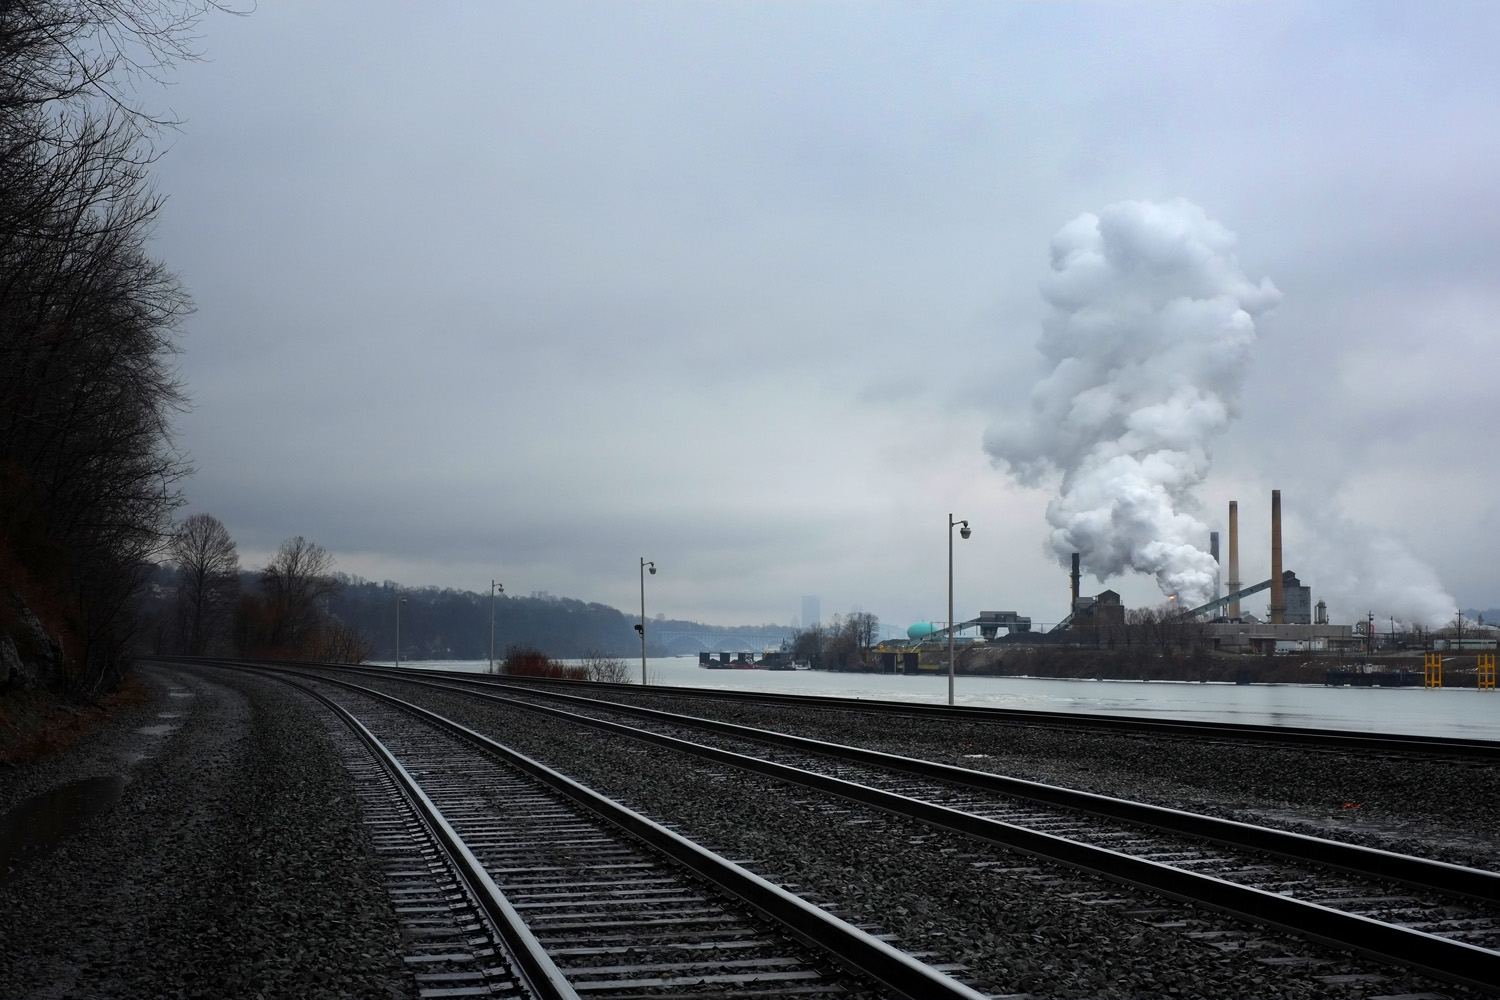 At the time this project was in production, the Shenango Inc. coke works on Neville Island was under a court order to reduce emissions. During a period of 432 days between July 2012 and September 2013, the coke works on Neville Island was in violation for 330 days.  In December, 2015, it was announced that the plant would shut down.  © Brian Cohen, 2015.